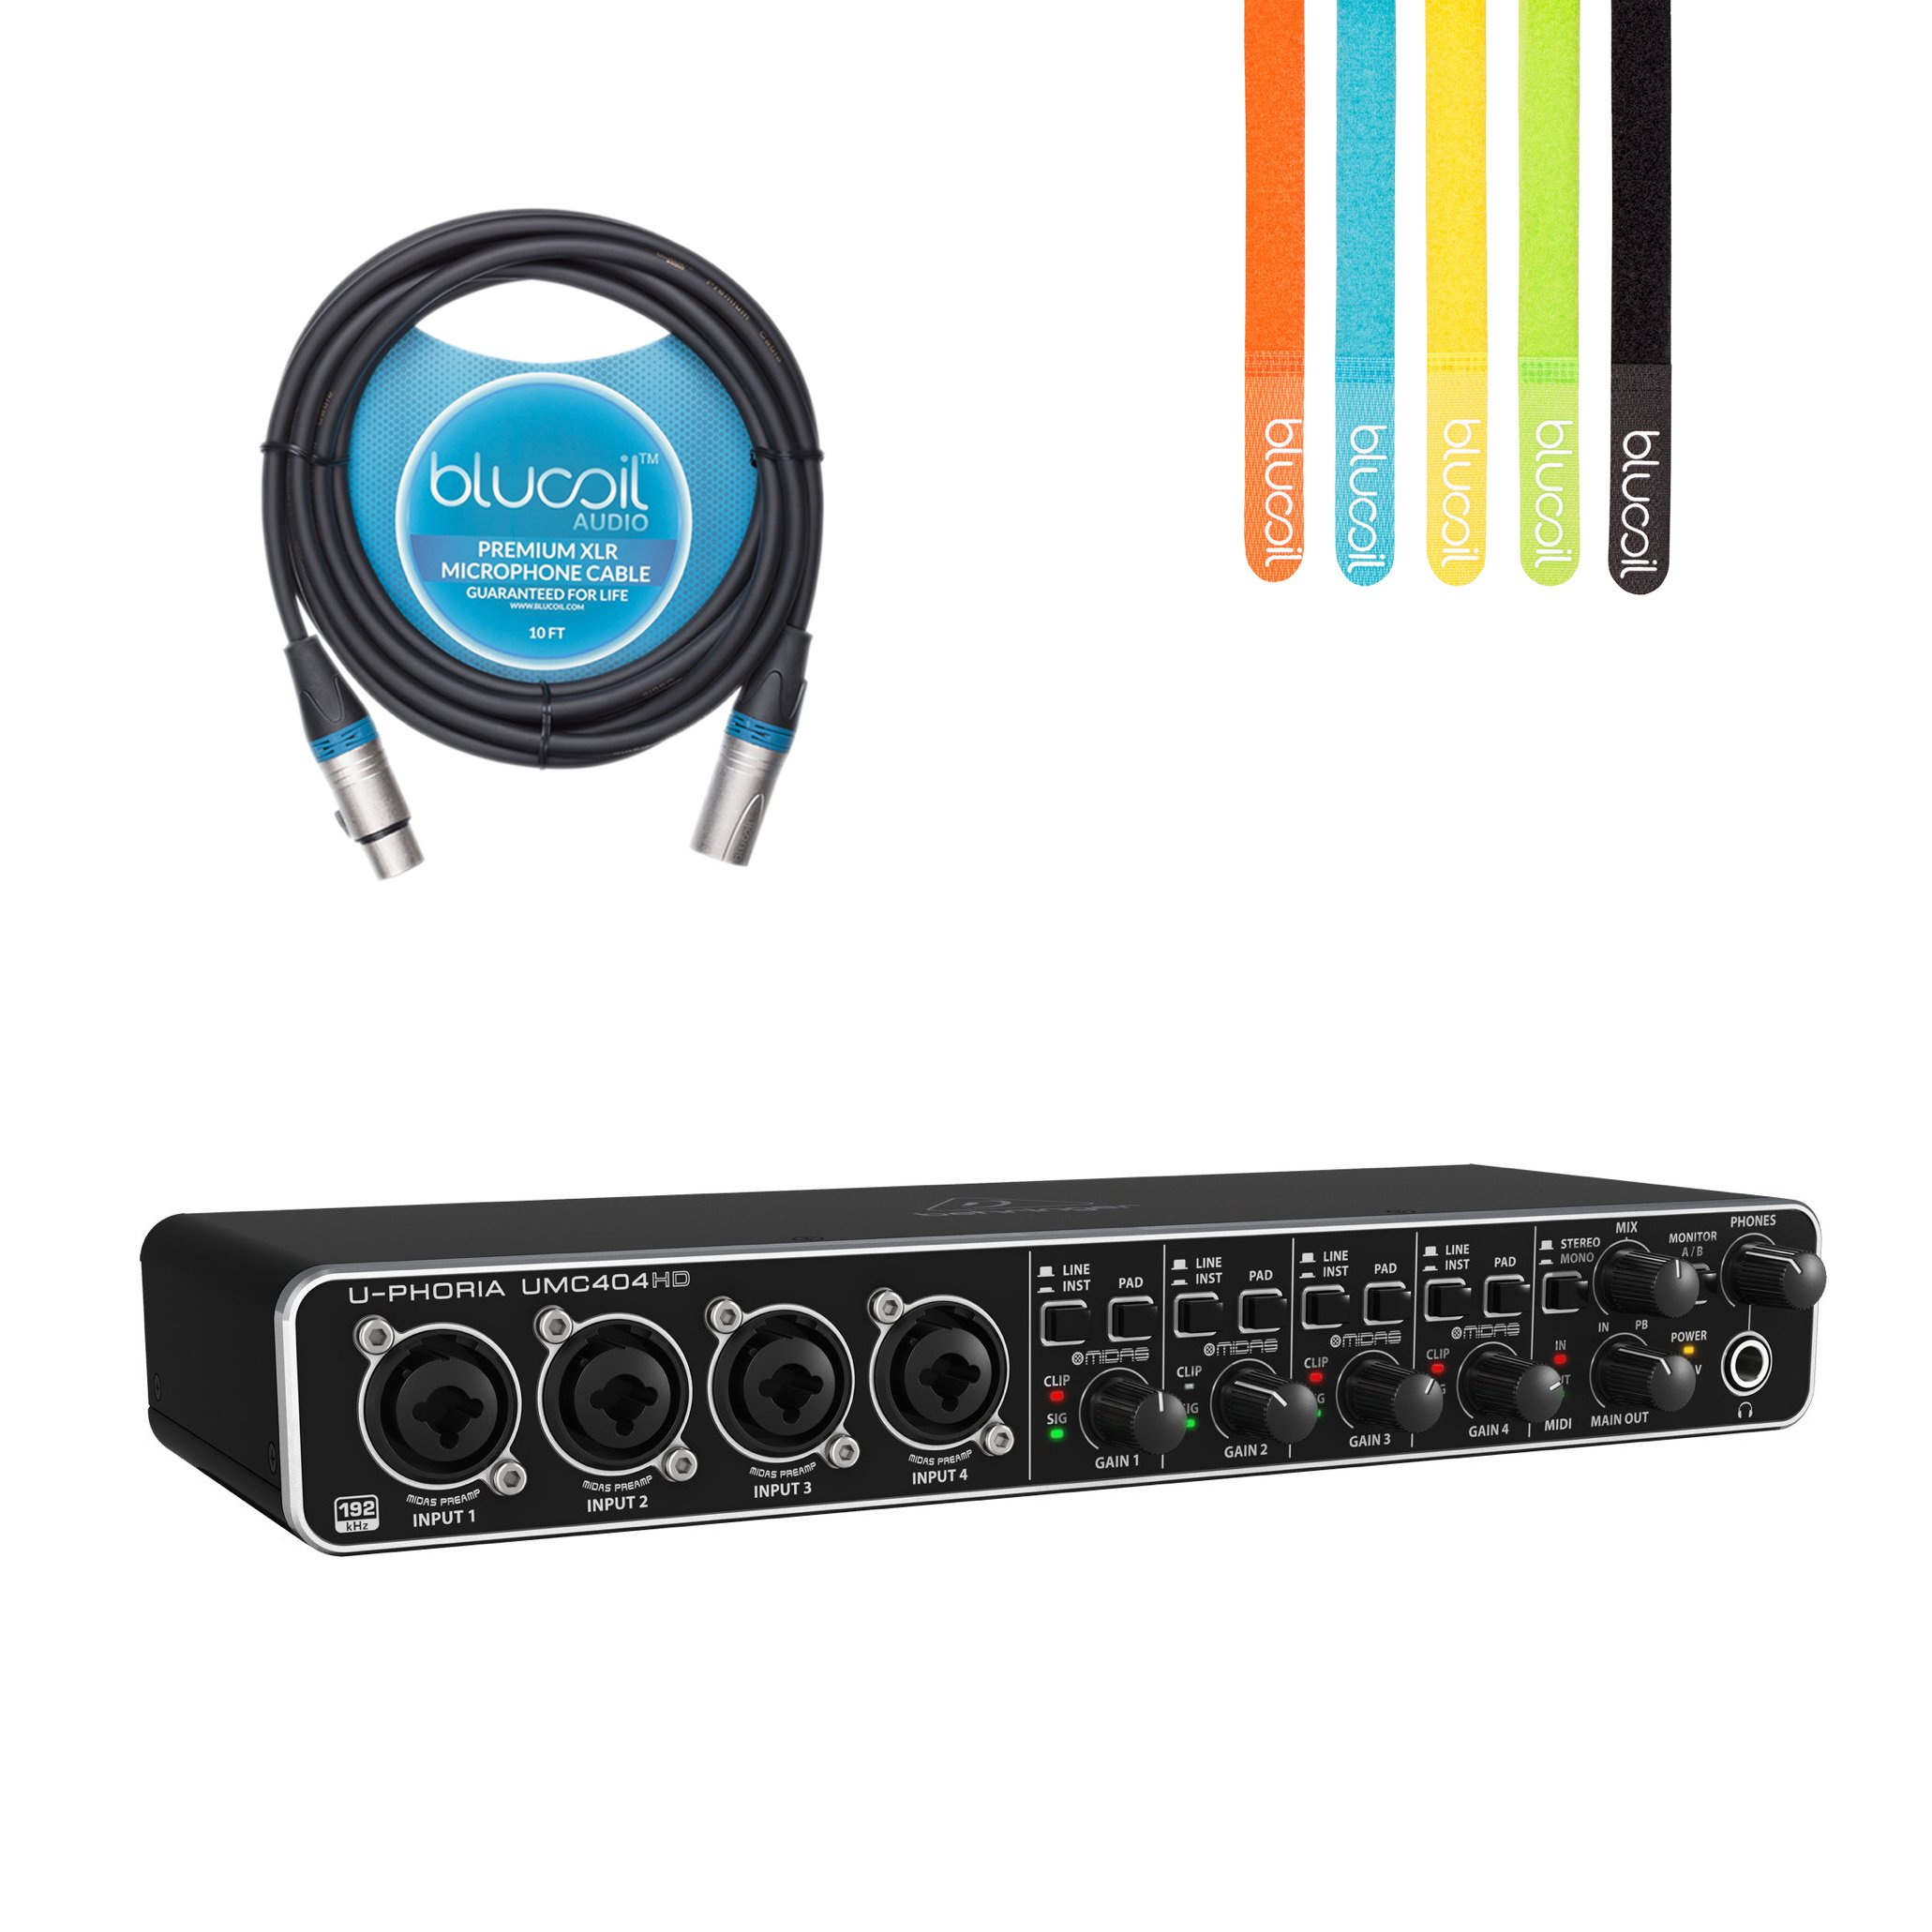 Behringer U-PHORIA UMC404HD USB 2.0 Audio/MIDI Interface -INCLUDES- Blucoil Audio 10' Balanced XLR Cable AND 5 Pack of Cable Ties by blucoil